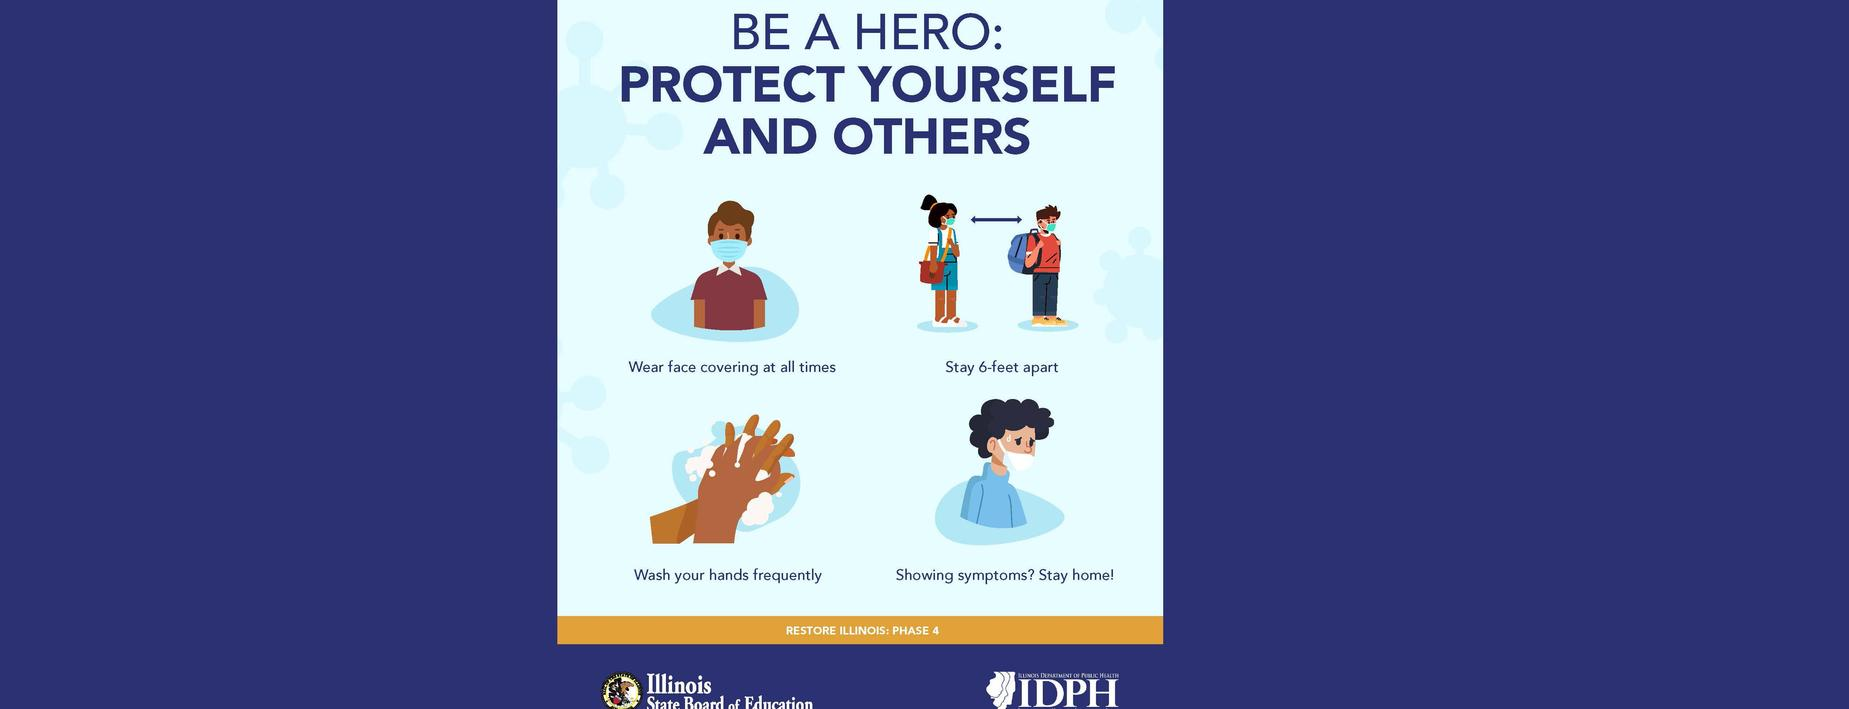 Be a hero protect others